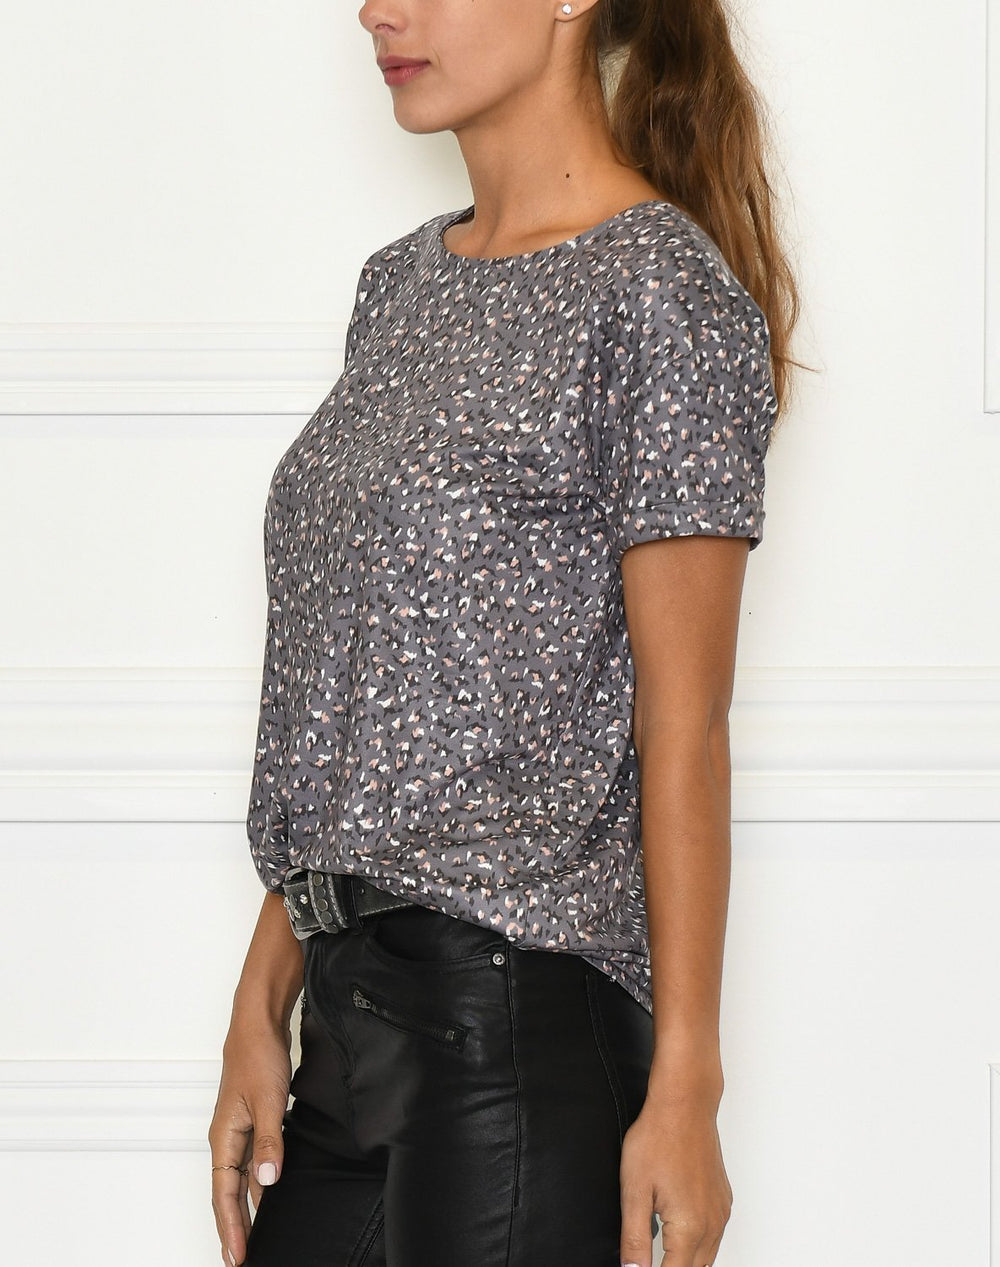 Luxzuz Karin t-shirt rock grey - Online-Mode